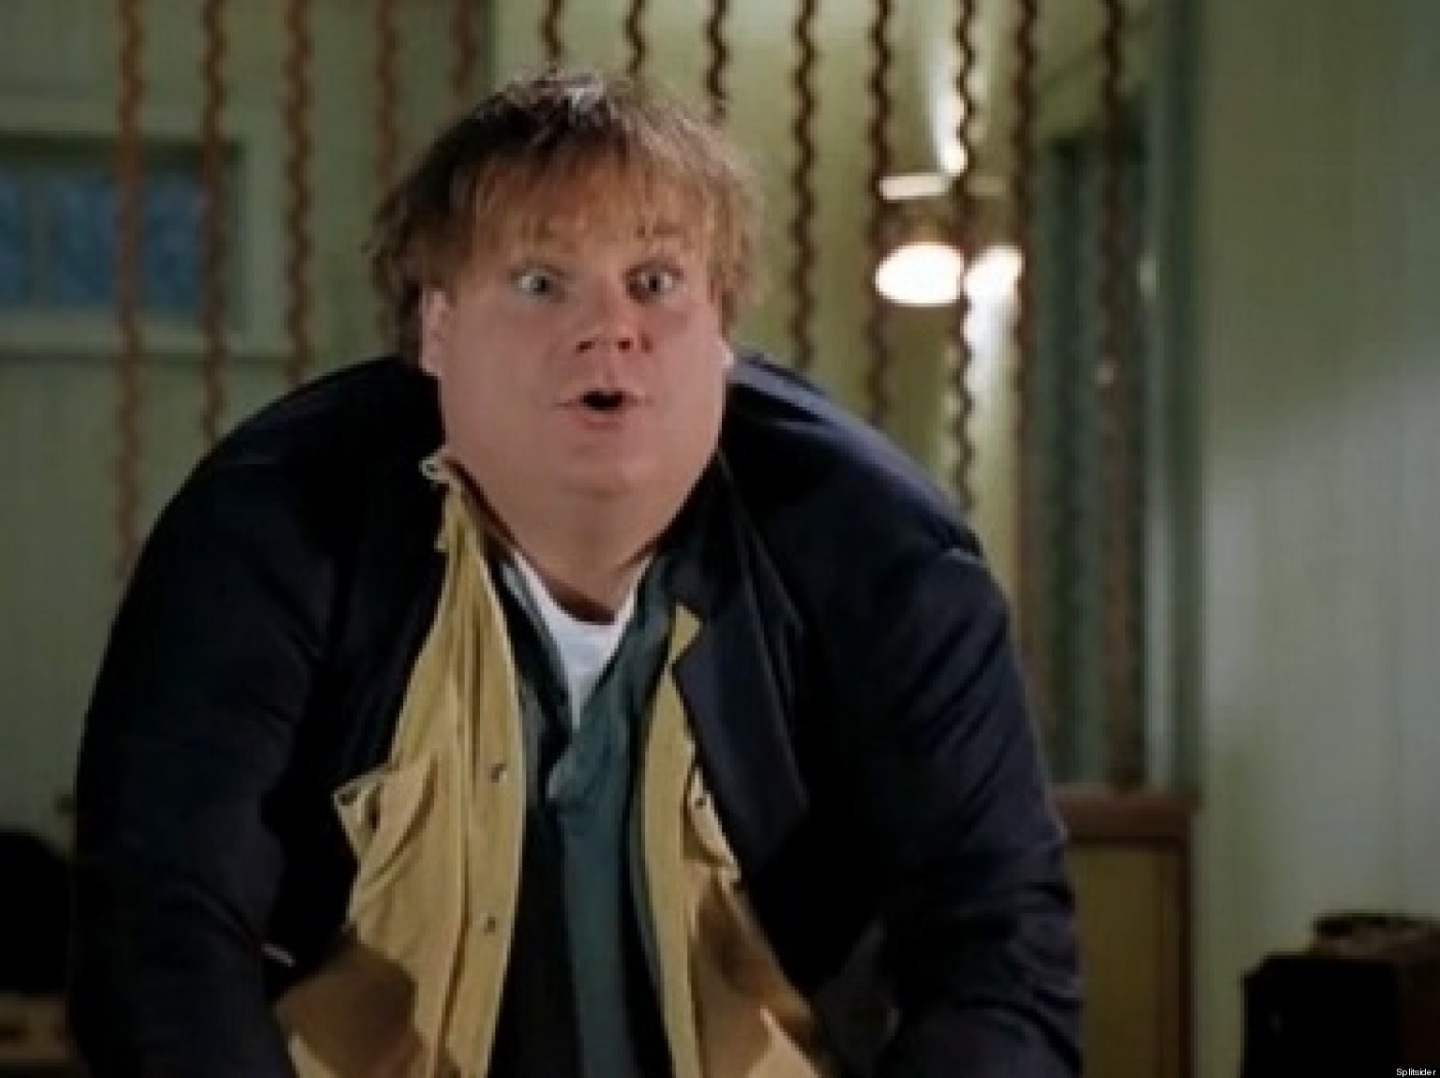 Celebrity Overdose – What Did They Use? : Chris Farley